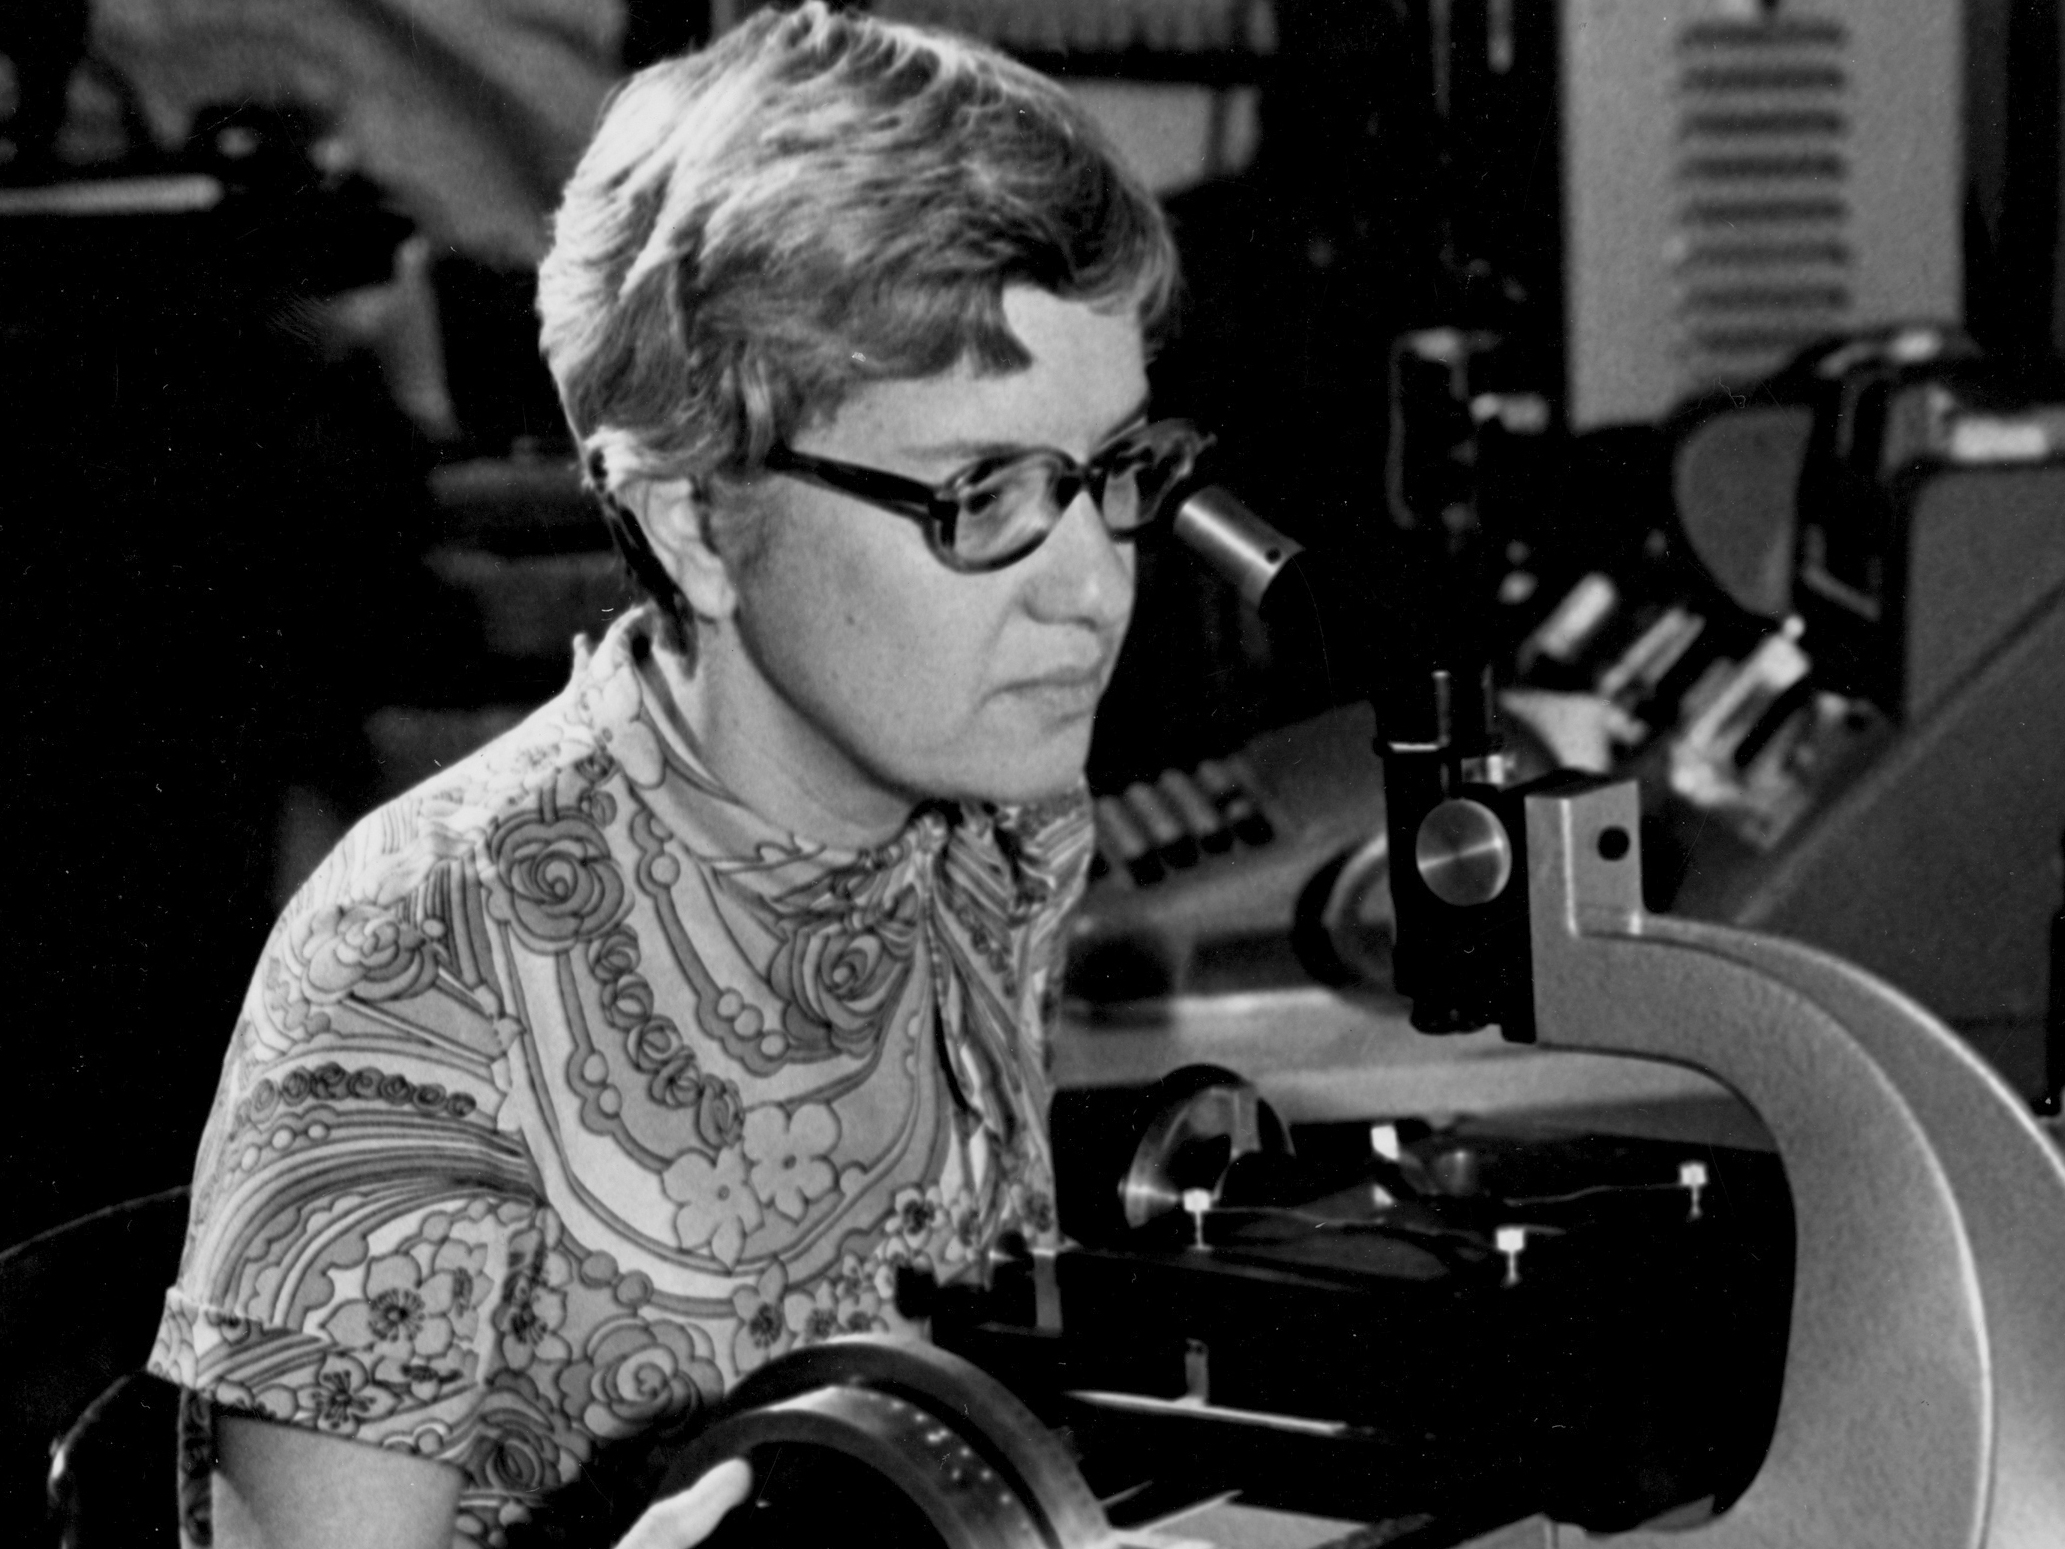 Reflecting On Some Of The Scientists We Lost In 2016